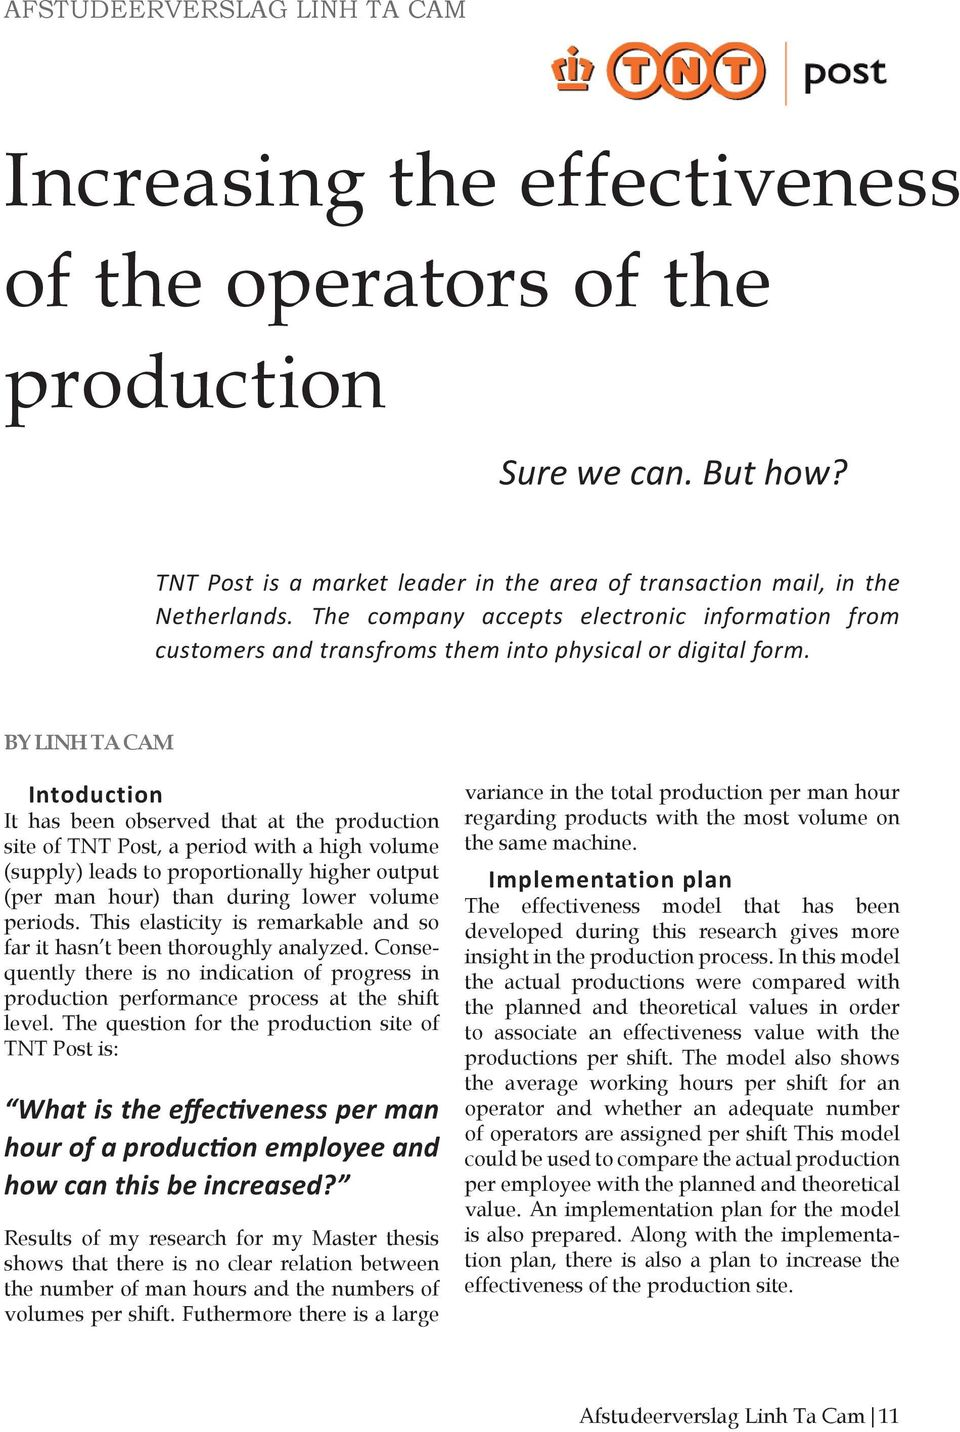 BY LInh TA cam Intoduction It has been observed that at the production site of TNT Post, a period with a high volume (supply) leads to proportionally higher output (per man hour) than during lower